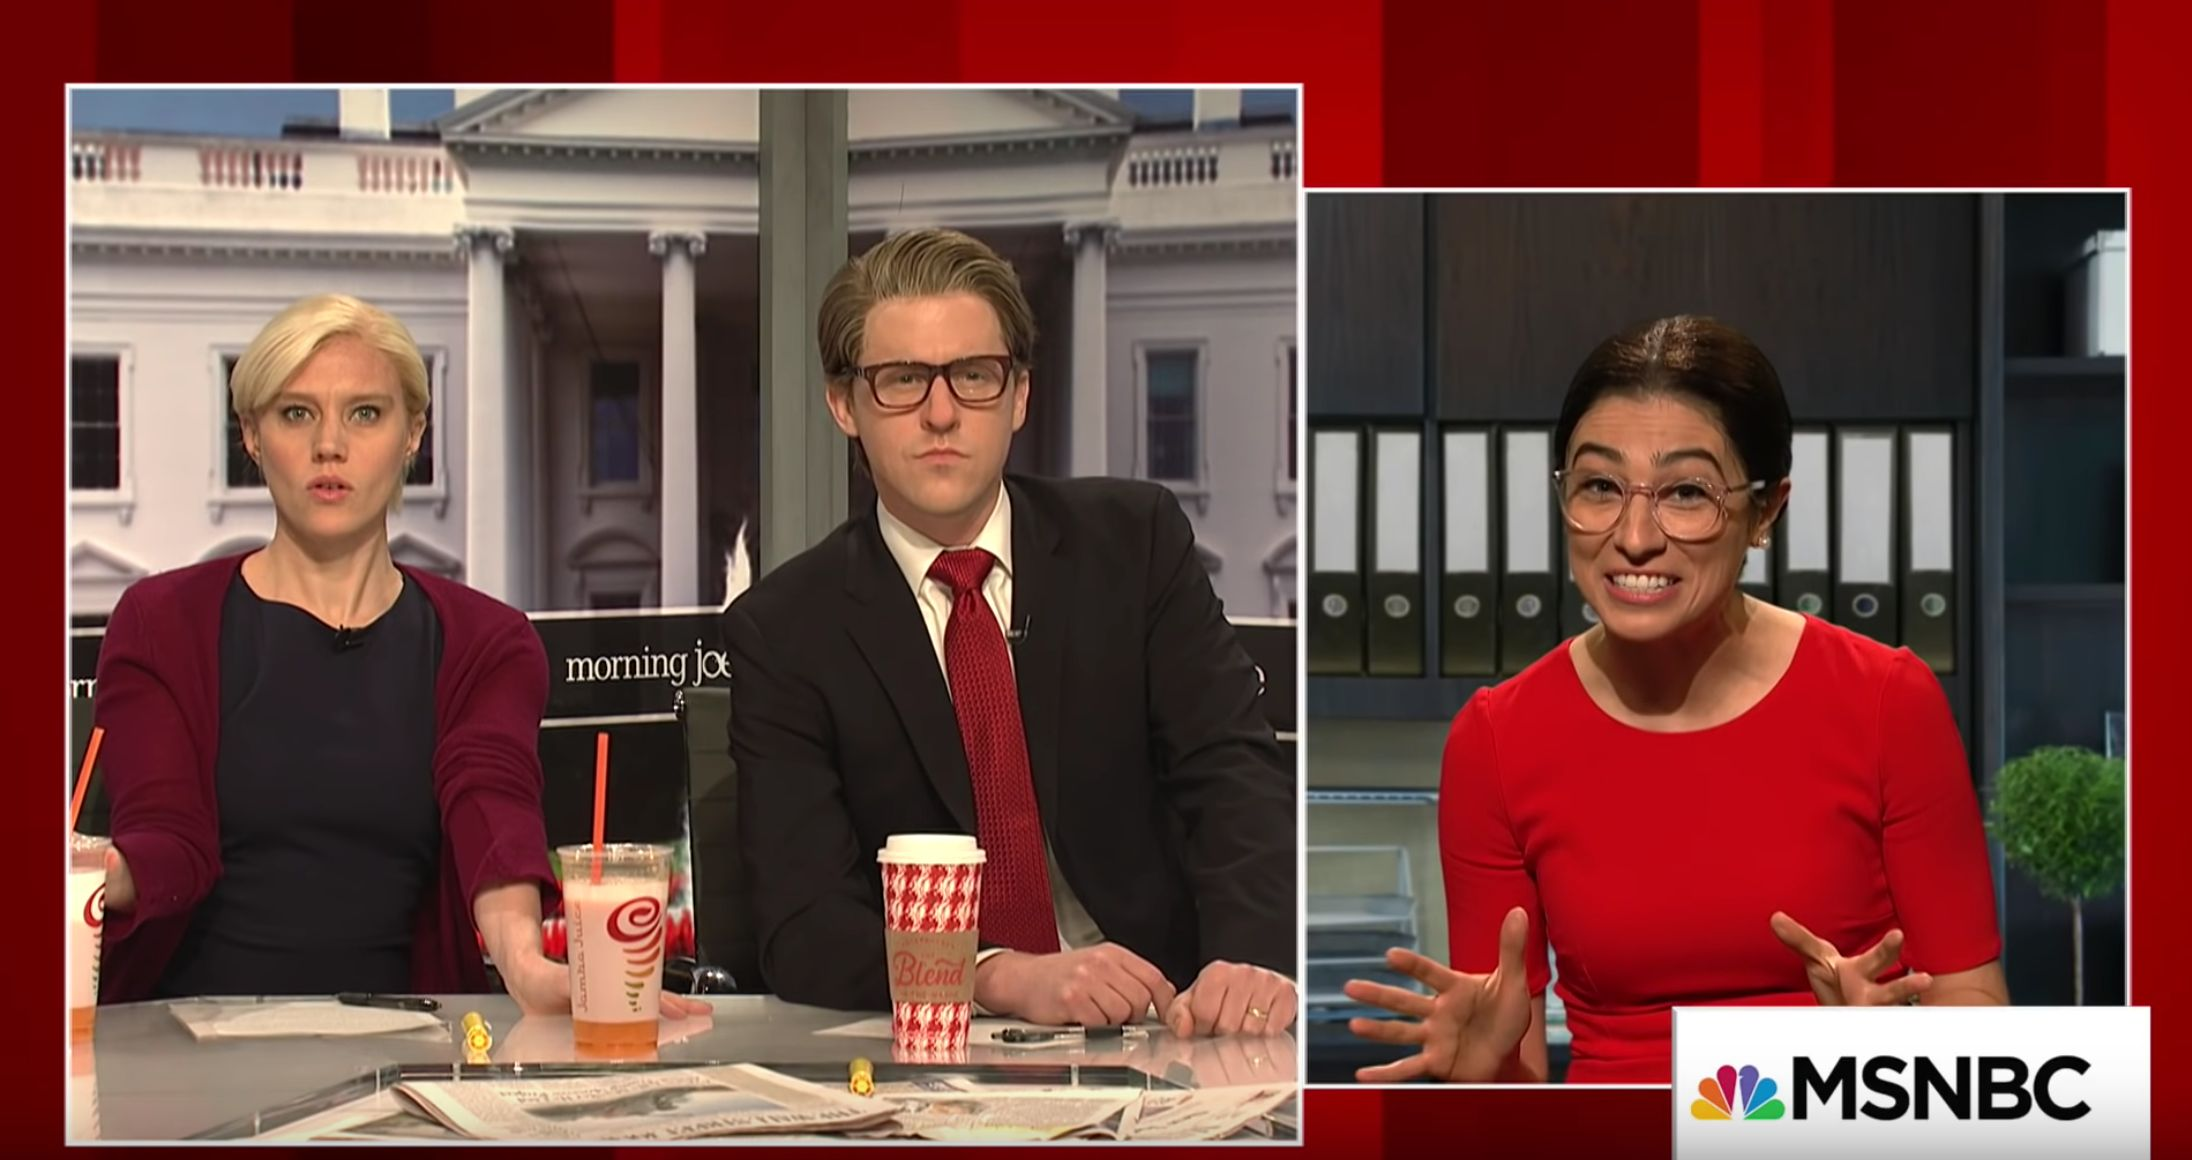 'SNL' Offers Its Take On Alexandria Ocasio-Cortez In 'Morning Joe'